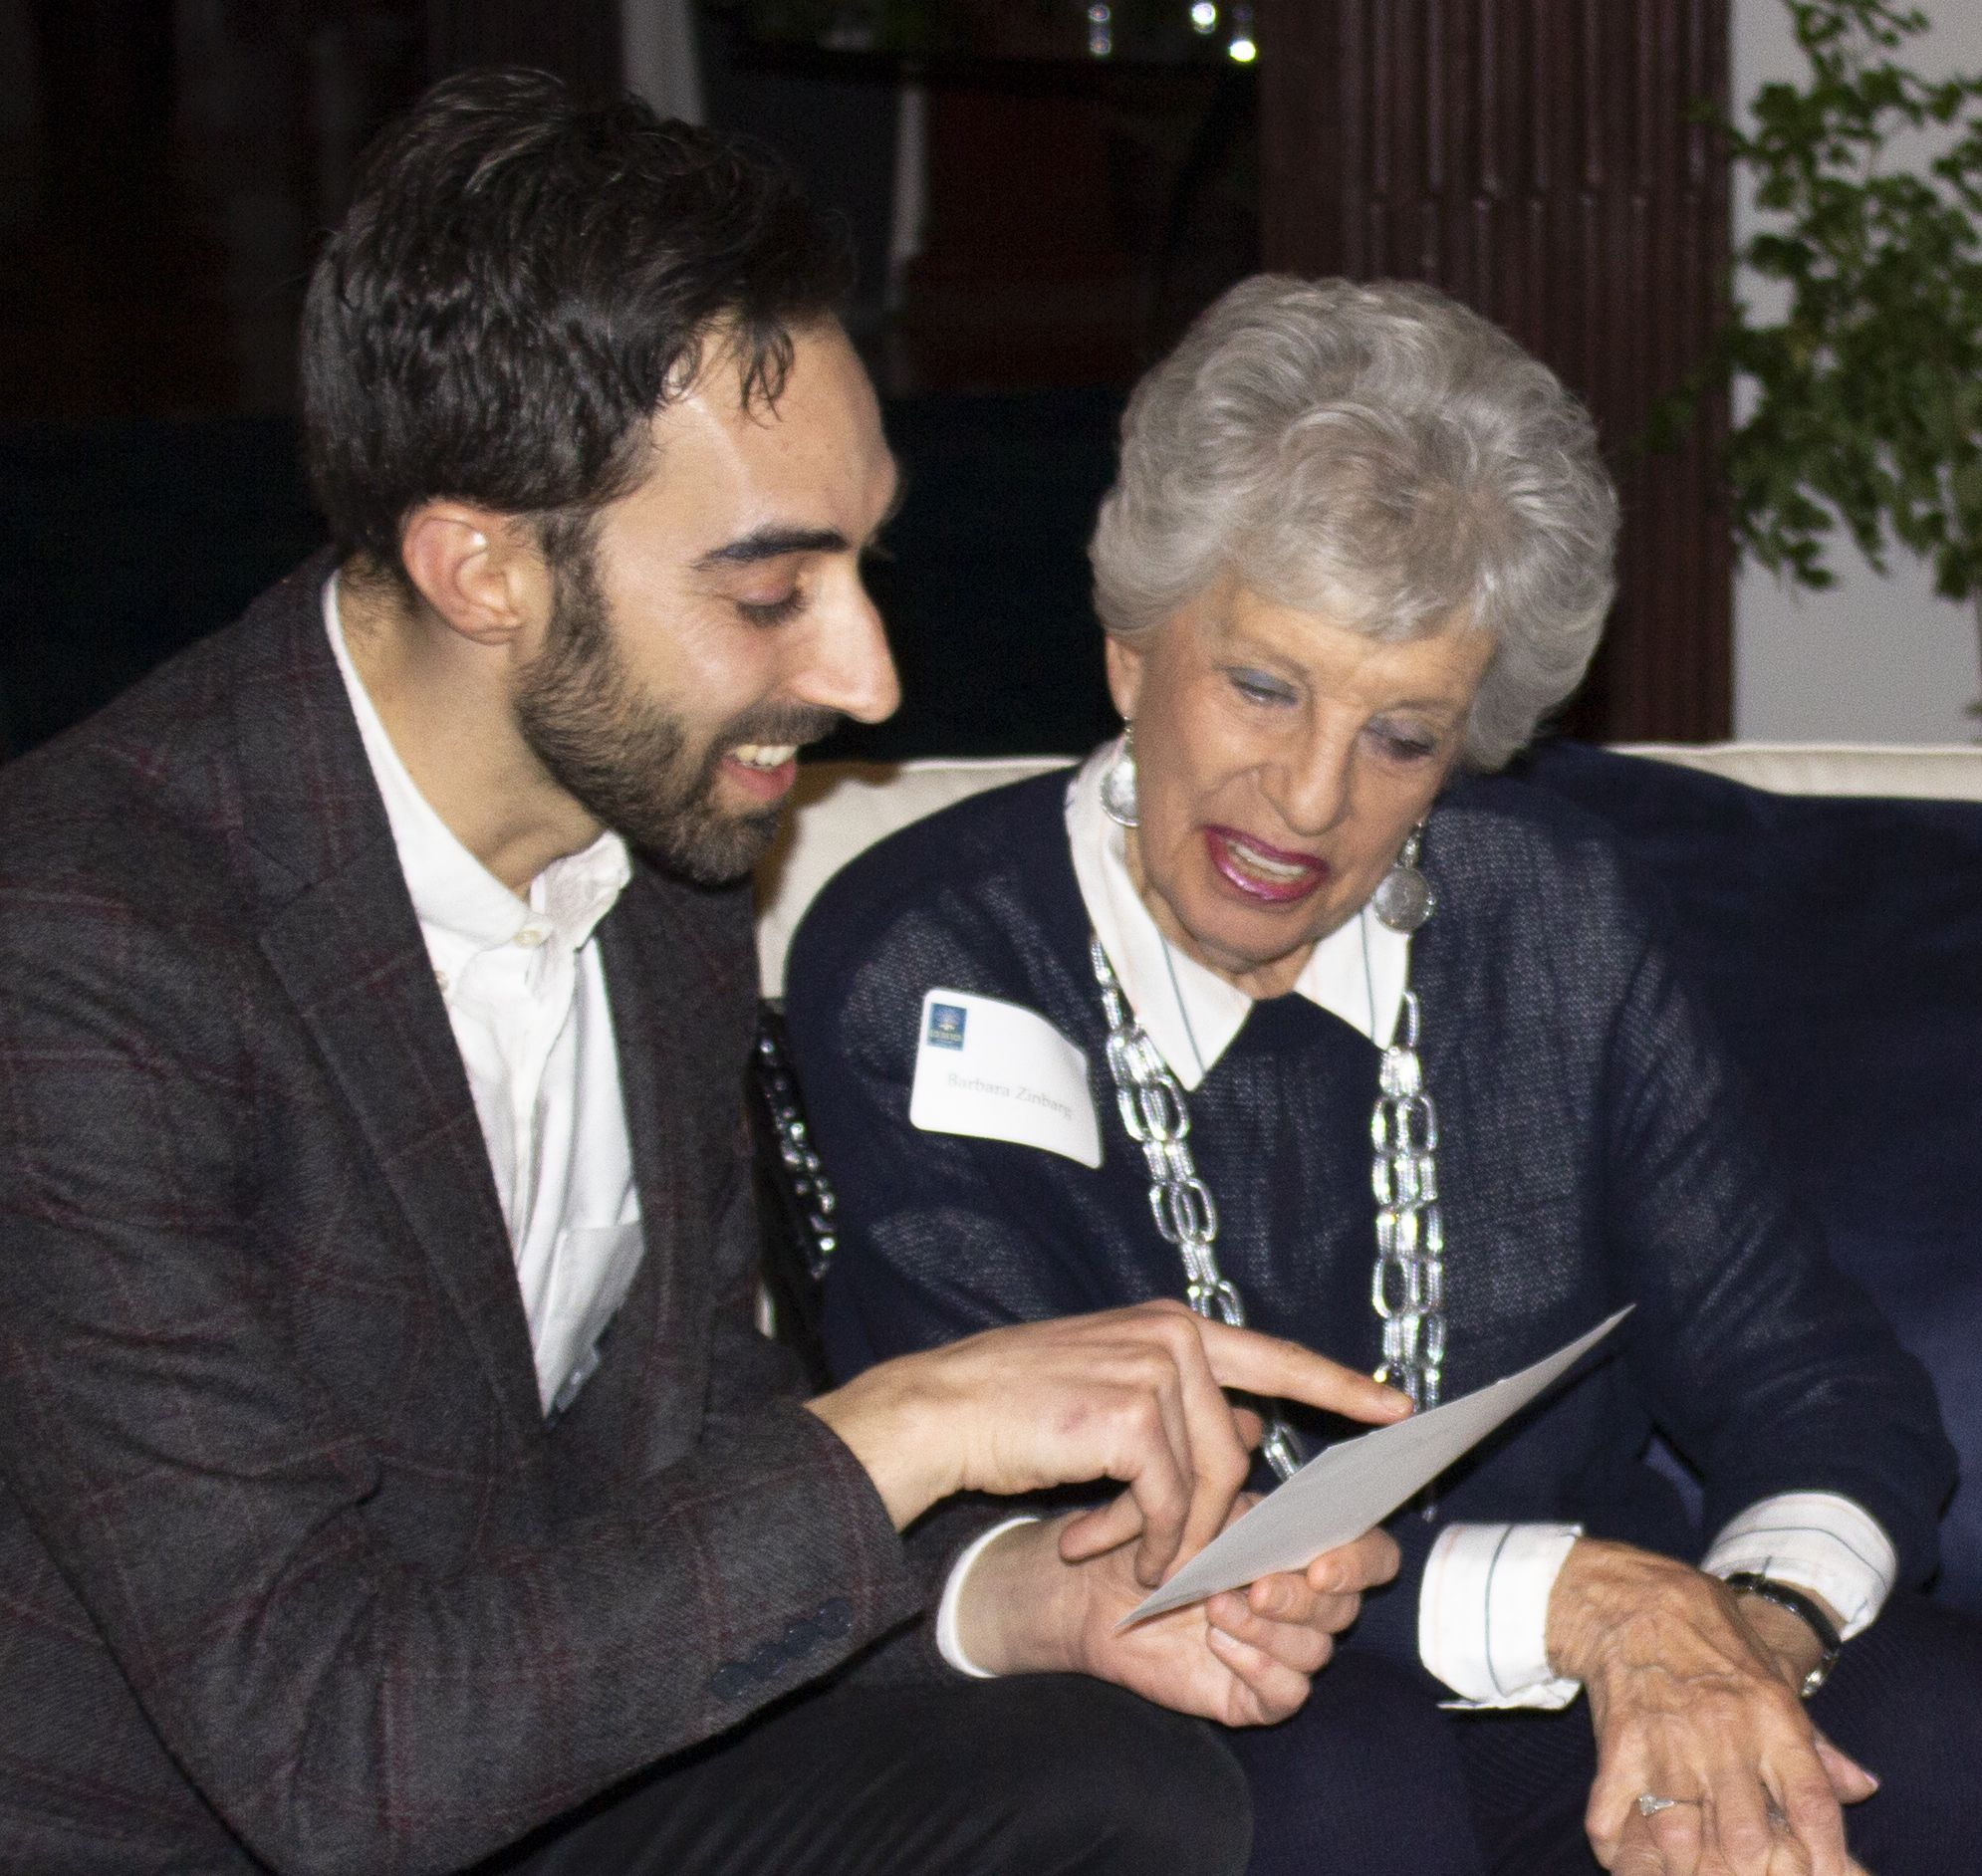 Former second  teacher Barbara Zinbarg reminisces with her student, author and food entrepreneur Jeffrey Yoskowitz '04 at a GOA Annual Fund event in February, 2020.